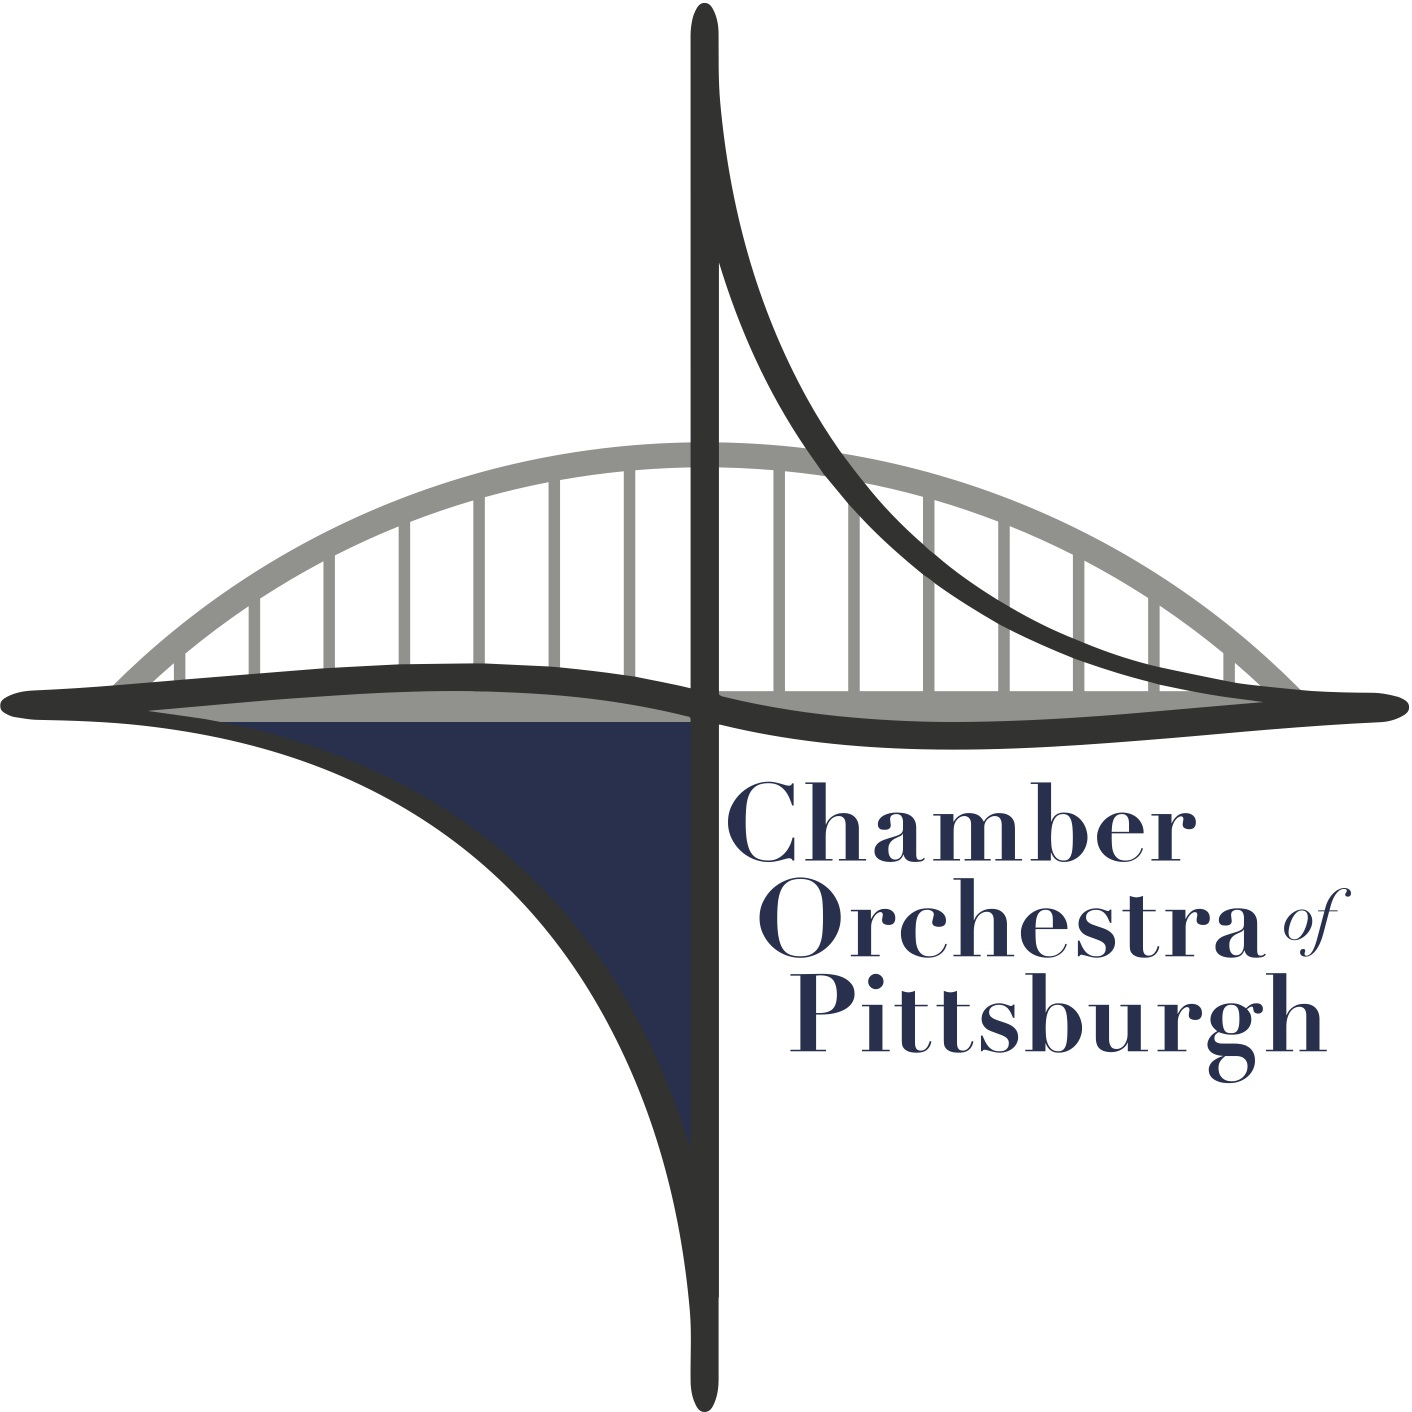 Chamber Orchestra of Pittsburgh